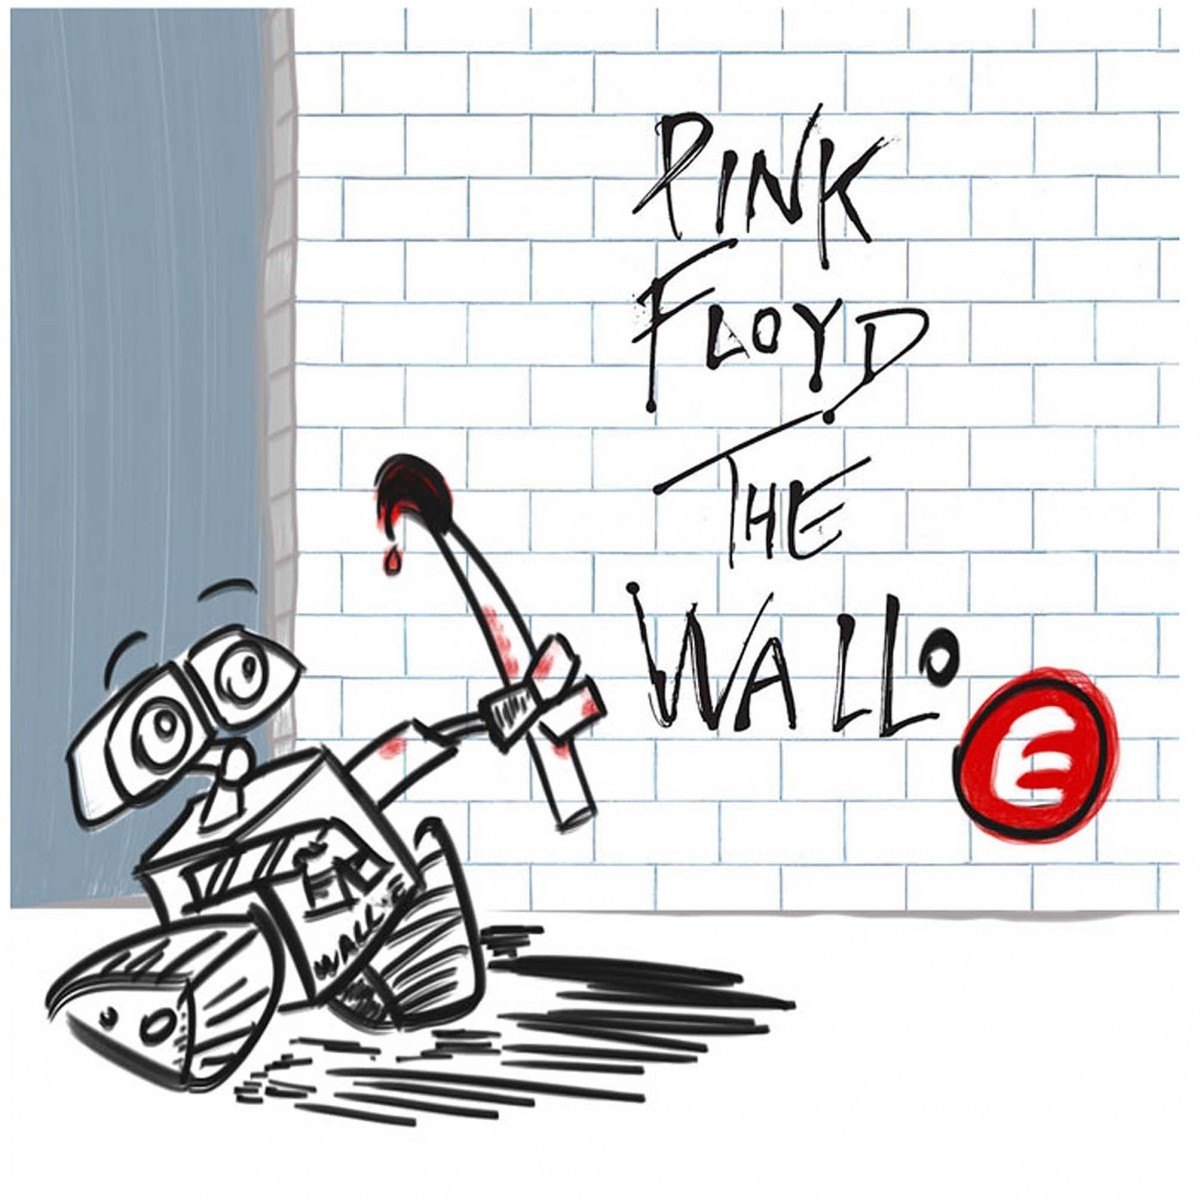 Babador  Rock Baby  - wall-e / Pink Floyd- White  - Baby Monster S/A